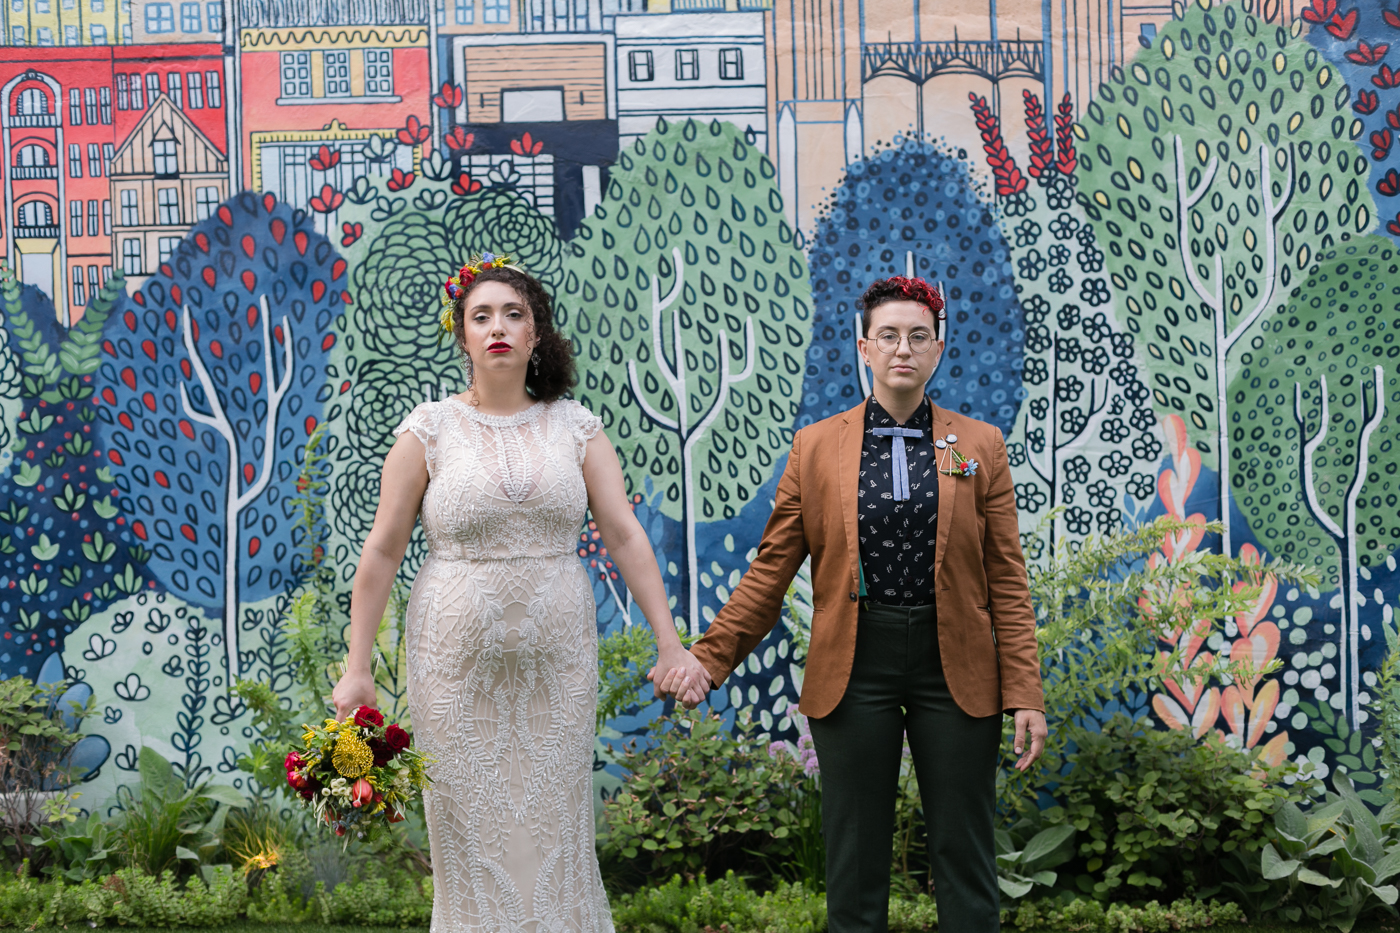 Styled at the Lytle House - Thistle and Twine Atelier joined forces with EcoWilde Flower Co., The Lytle House, Mignonette Bridal, Nika Vaughan Makeup Artists and Lonesome Traveler to bring a fun and colorful LGBTQ styled urban Chicago wedding. Check it!